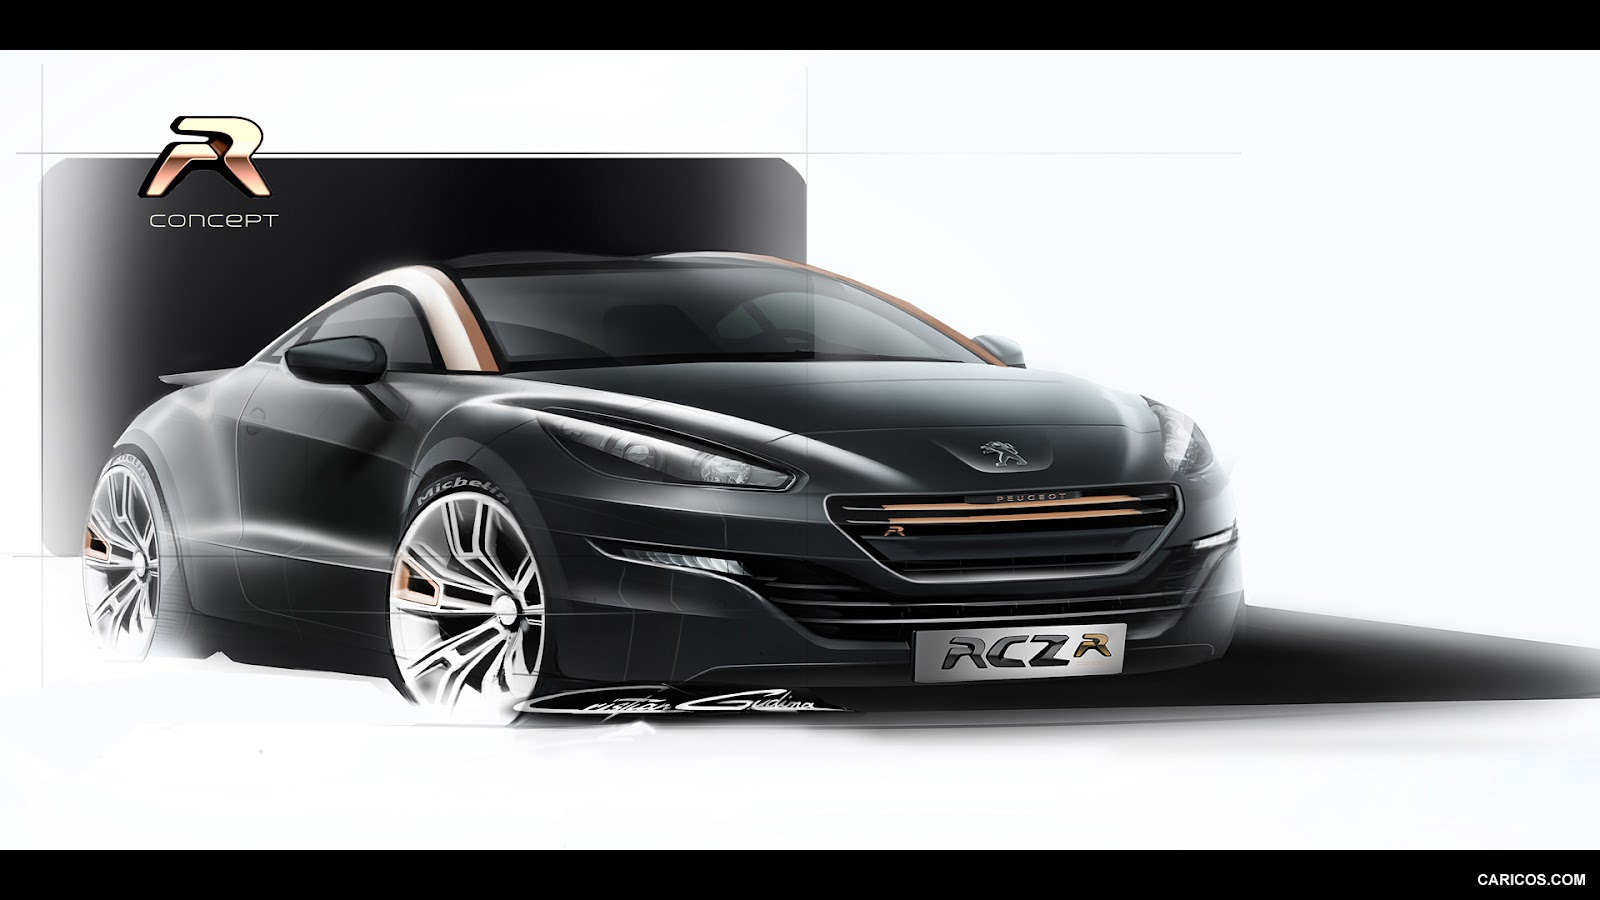 peugeot rcz r concept ototasarim com. Black Bedroom Furniture Sets. Home Design Ideas